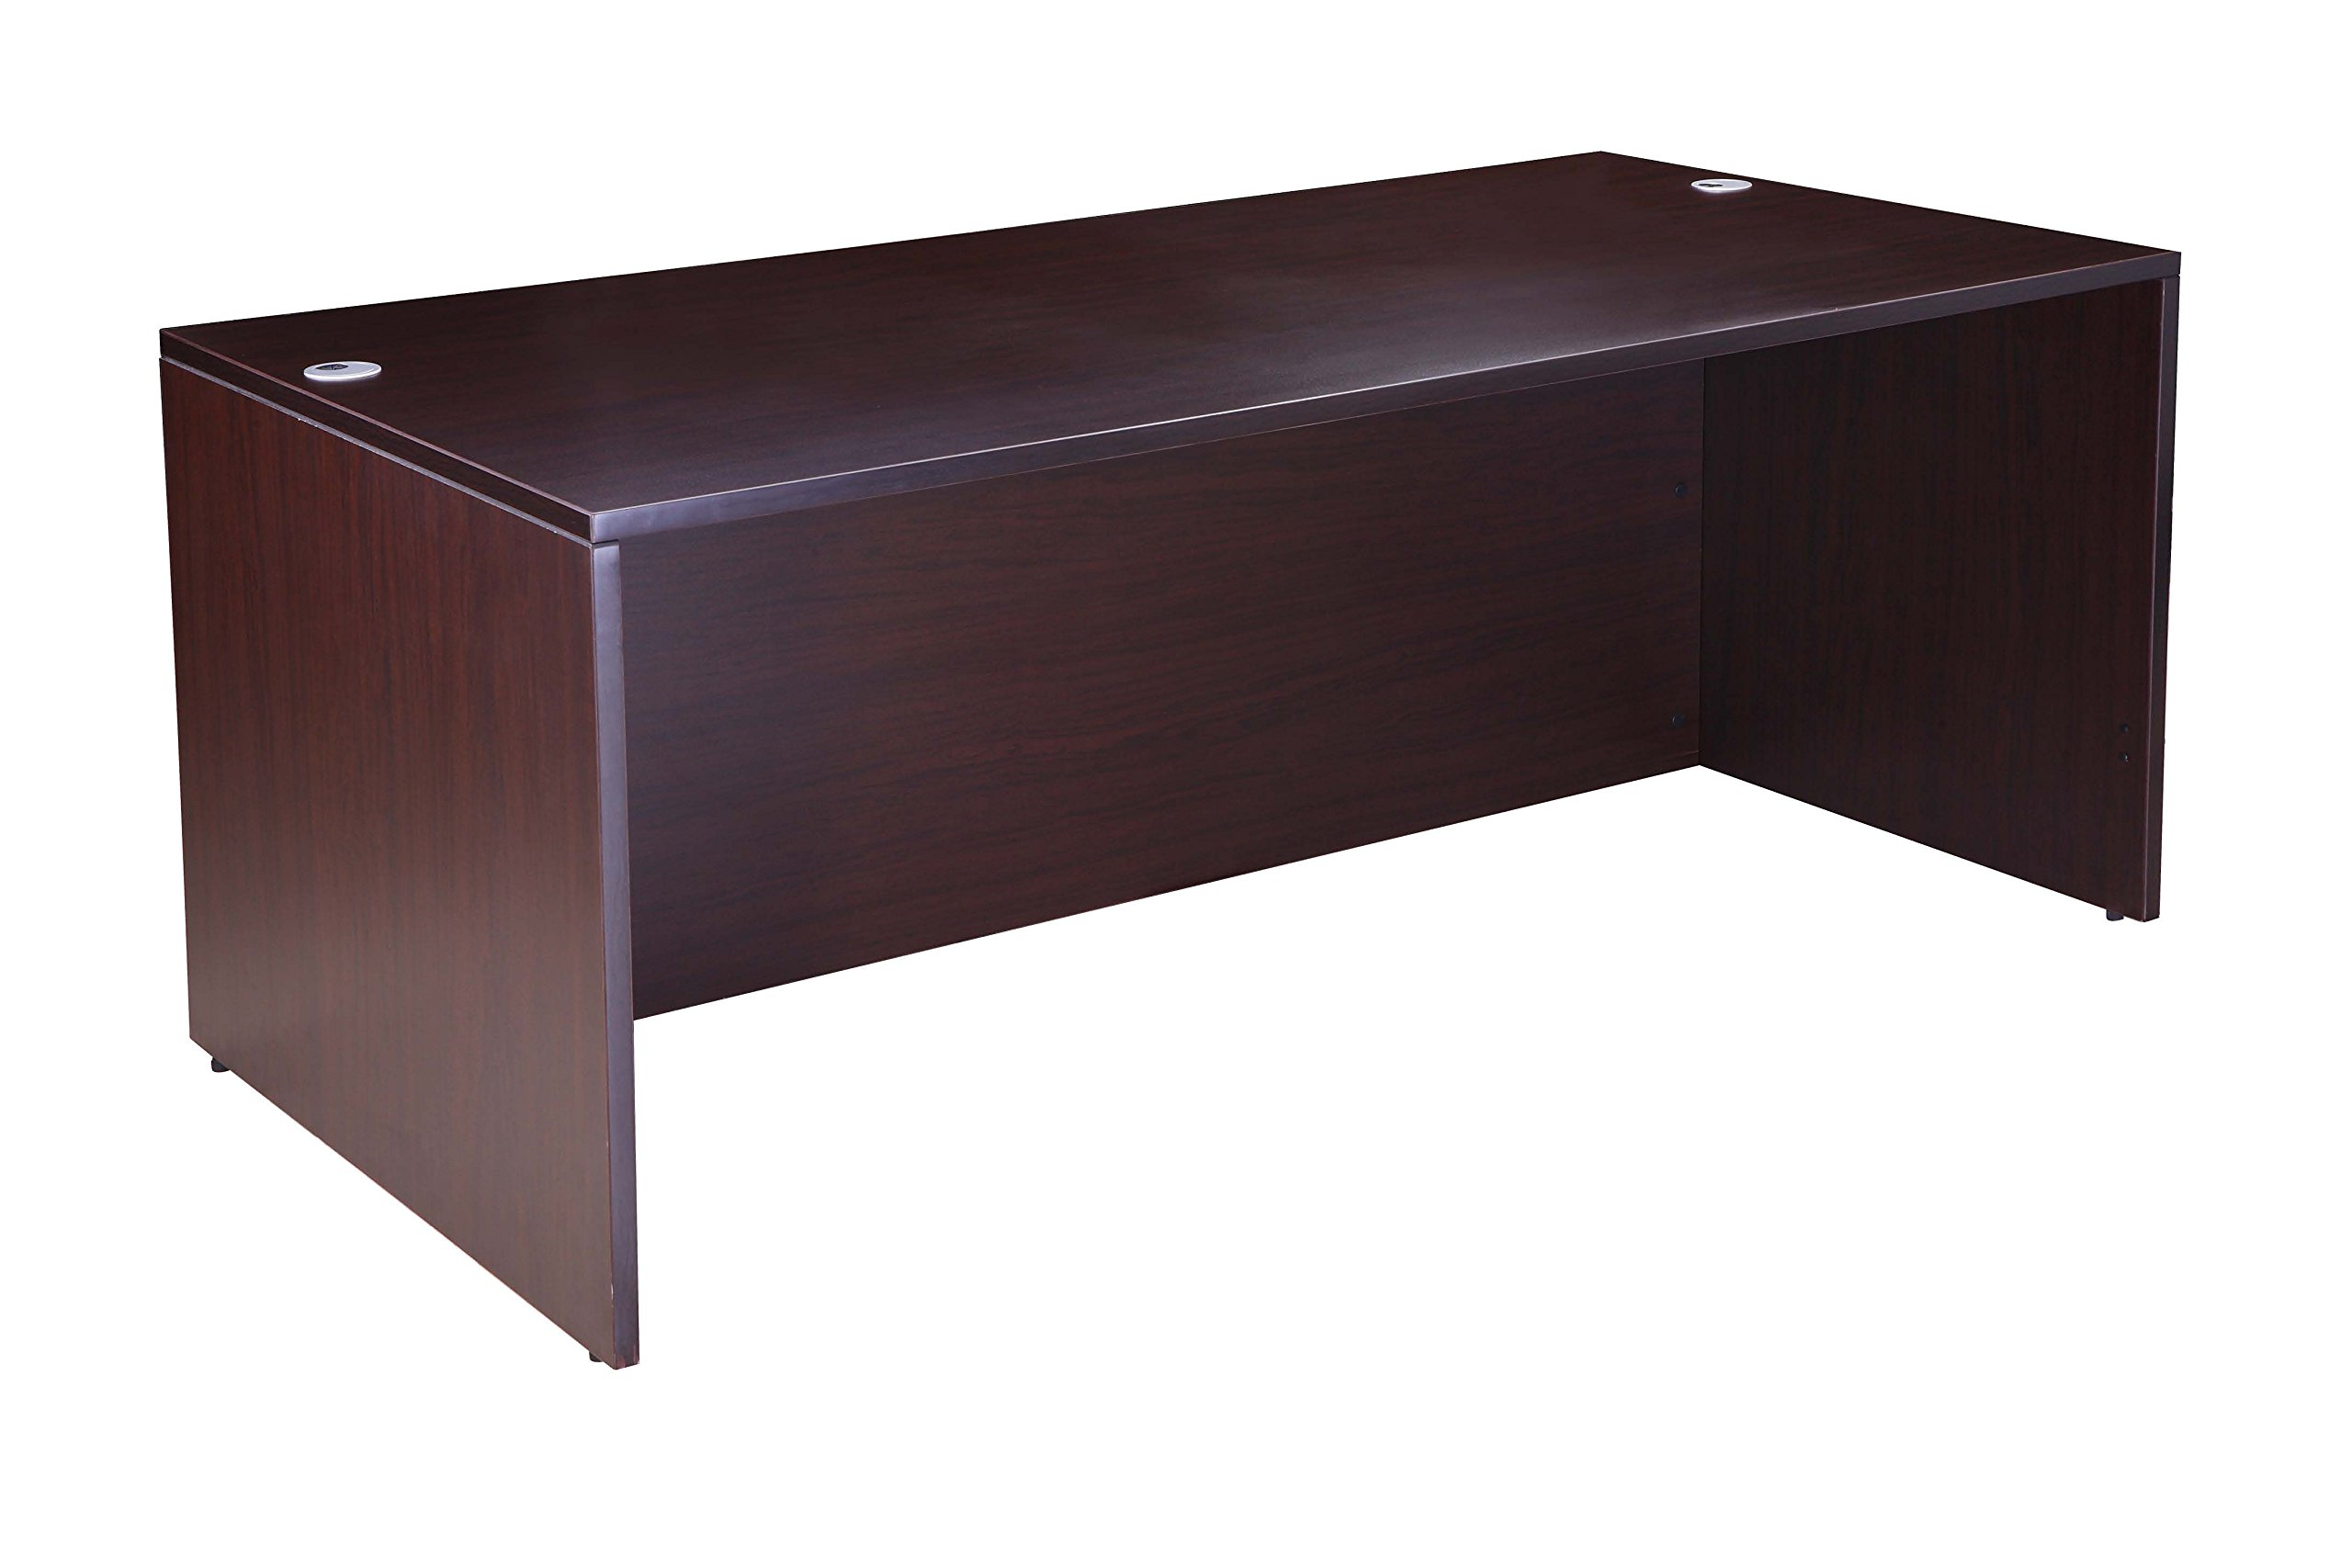 Boss Office Products Holland 71'' Executive U-Shape Desk with File Storage Pedestal and Hutch, Mocha by Boss Office Products (Image #2)